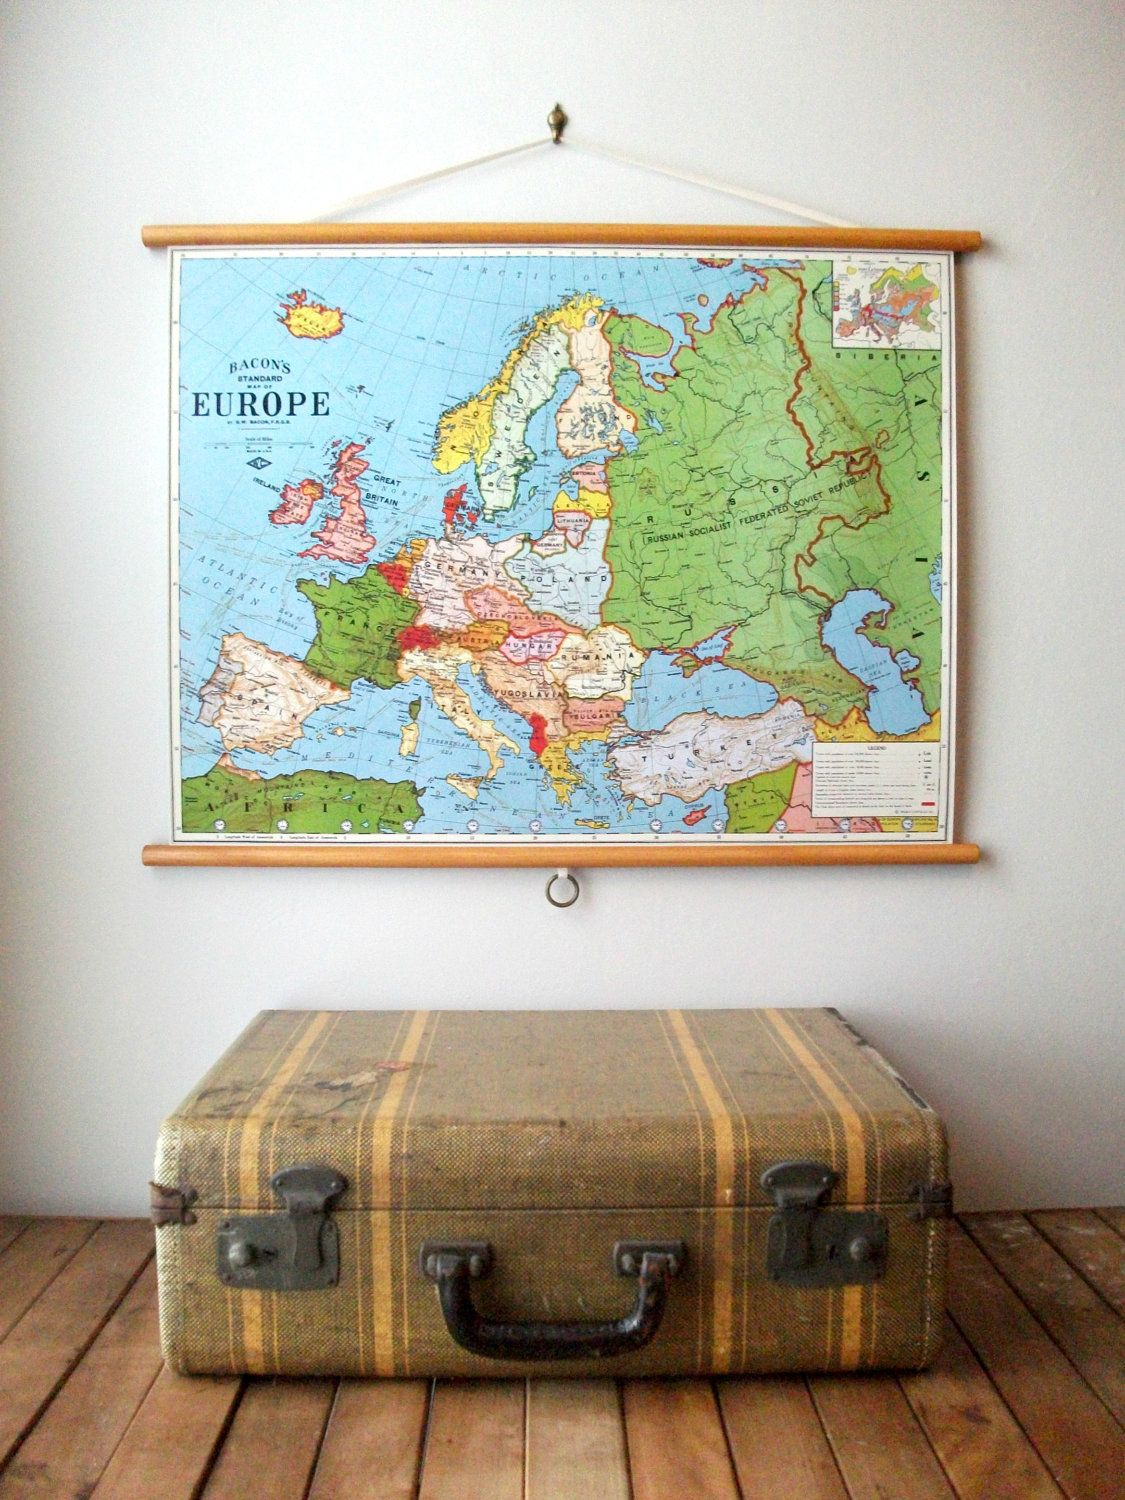 World map 1897 vintage pull down school map chart reproduction pull down map educational chart vintage style wall hanging poster print with stained wood trim map of europe 24x185 3500 via etsy gumiabroncs Gallery